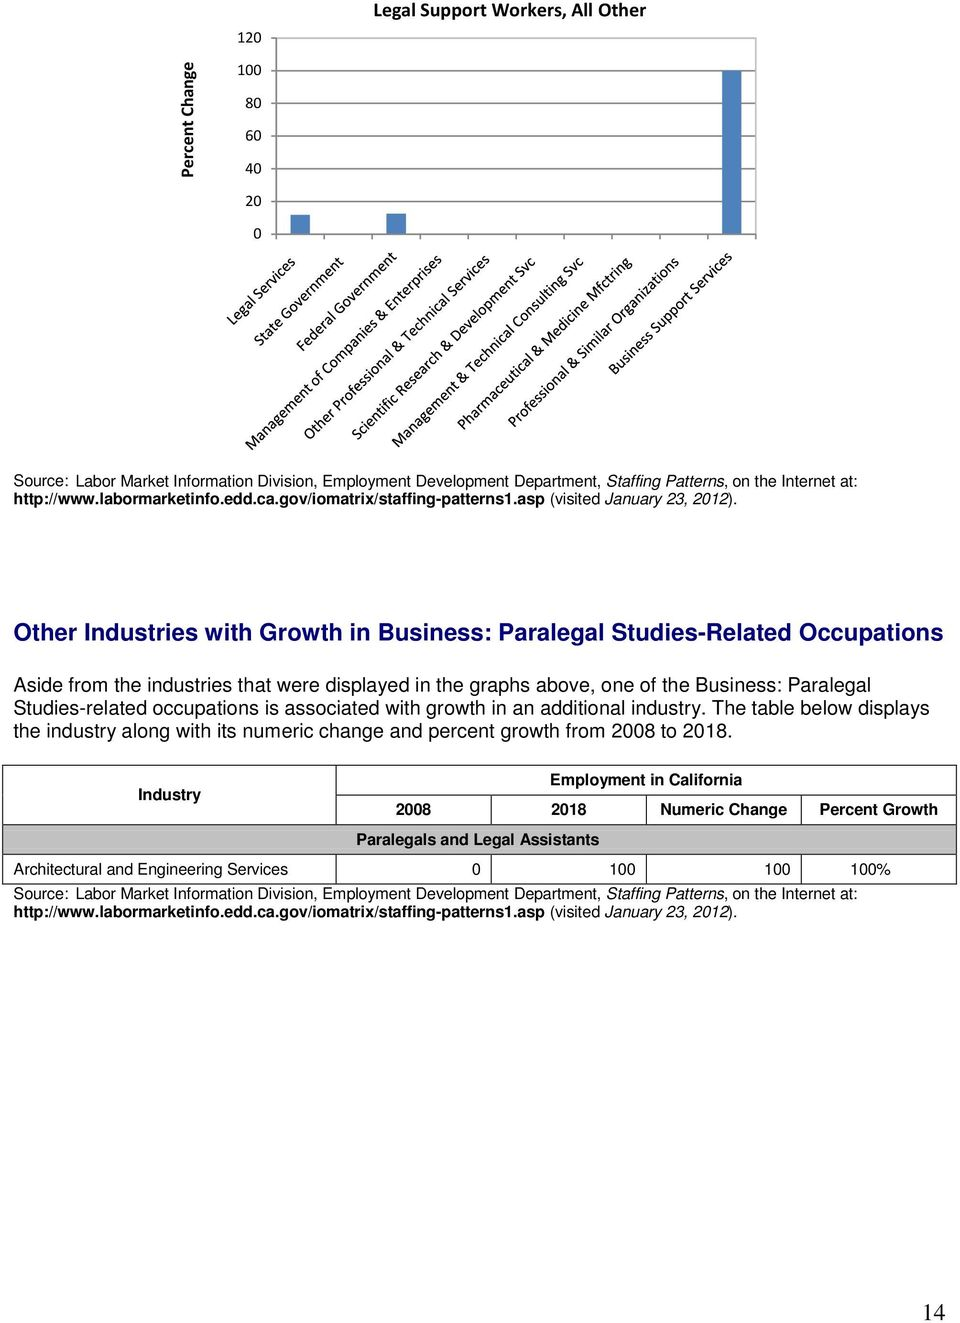 Other Industries with Growth in Business: Paralegal Studies-Related Occupations Aside from the industries that were displayed in the graphs above, one of the Business: Paralegal Studies-related